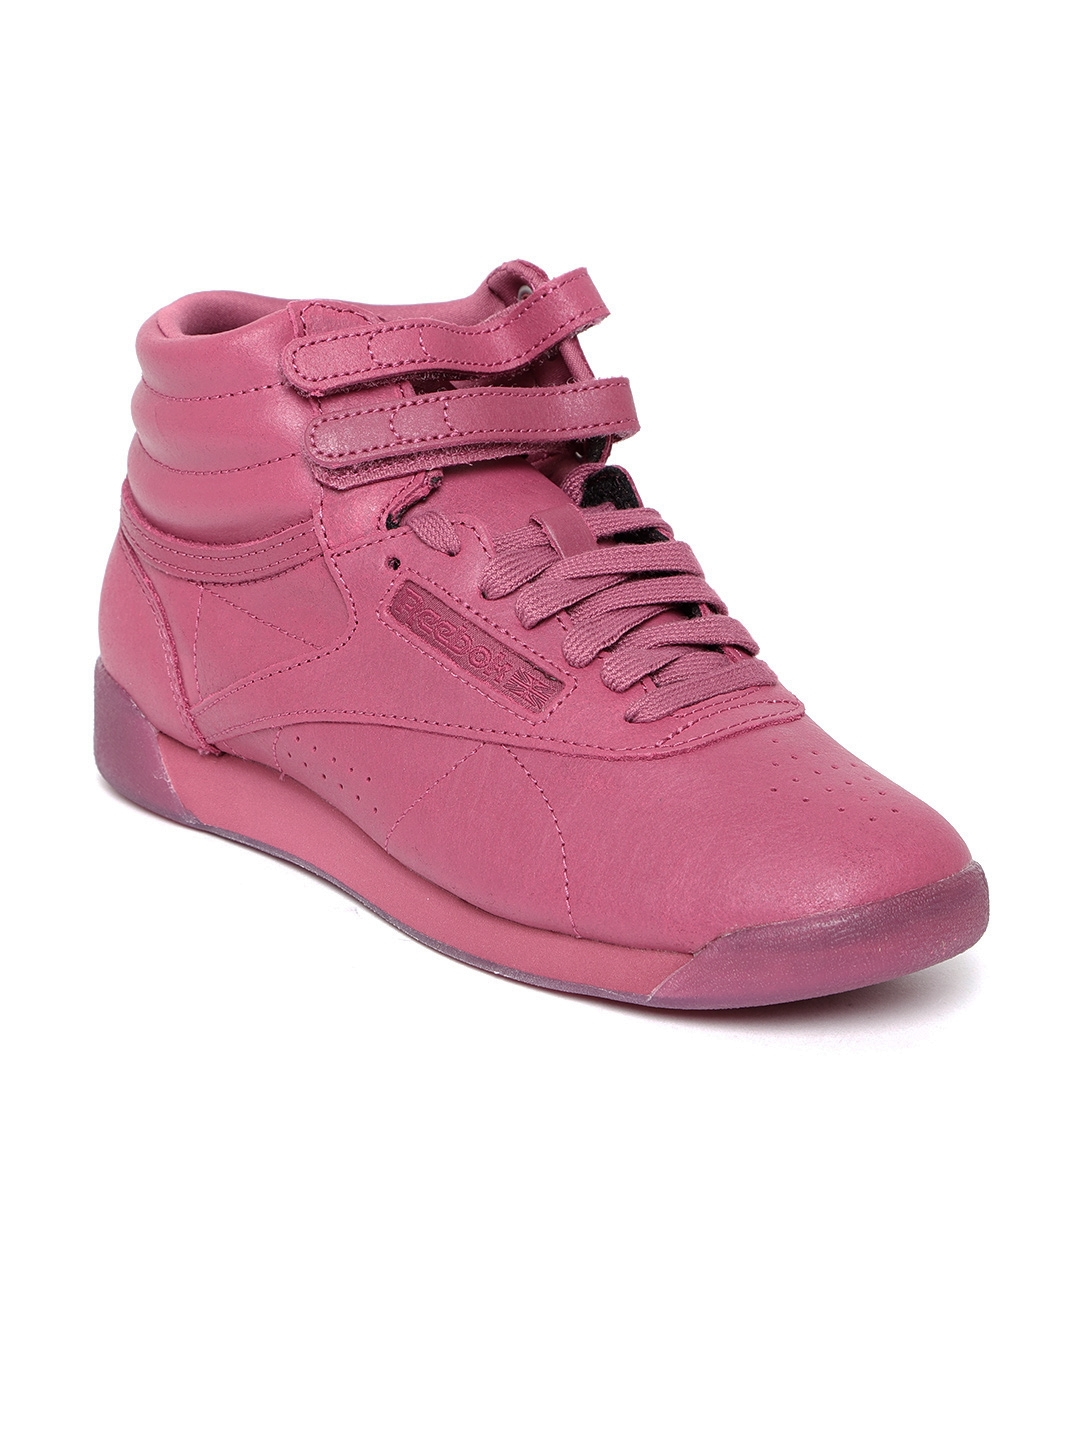 70ed292418a8 Buy Reebok Classic Women Pink Freestyle HI Suede Mid Top Sneakers ...